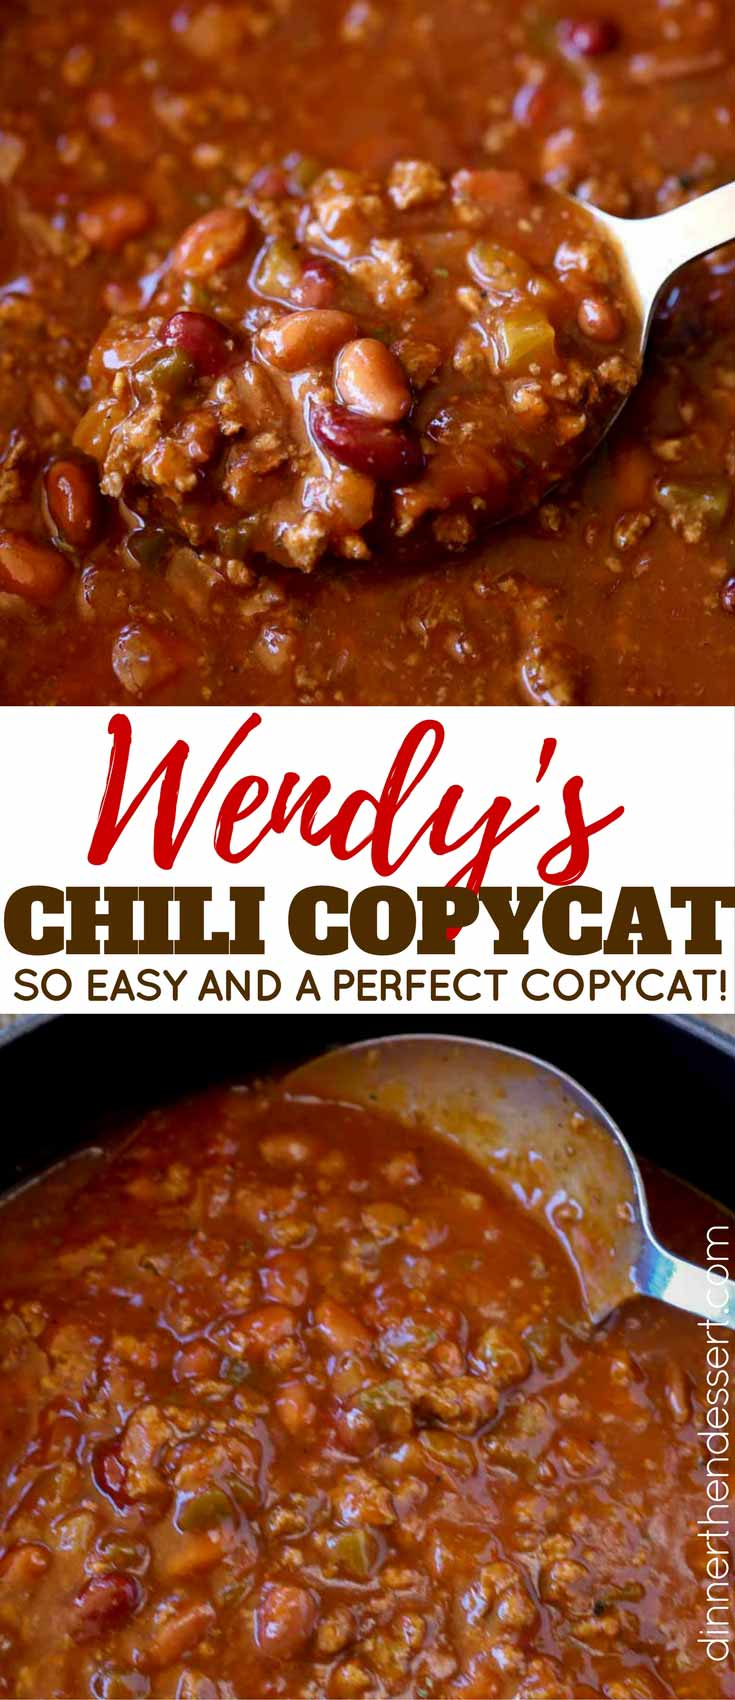 Wendy's Chili copycat made with kidney beans, onions, chilis, bell peppers and tomatoes with a spicy chili powder and cumin spices. Taste like a perfect copycat!